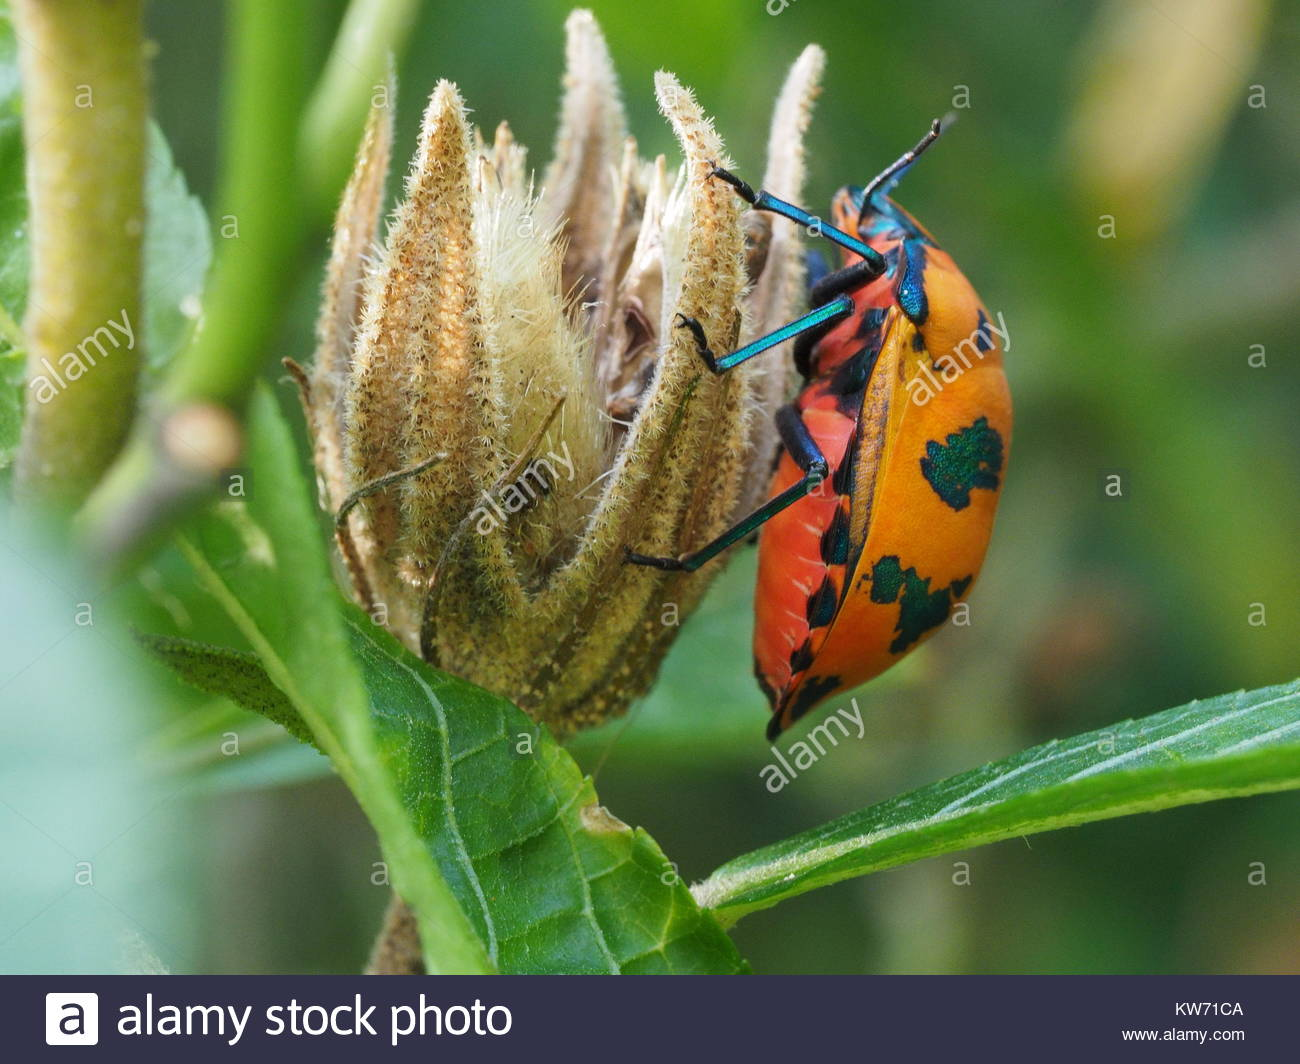 Coloutful Bugs In A Hibiscus Tree Stock Photo 170414506 Alamy